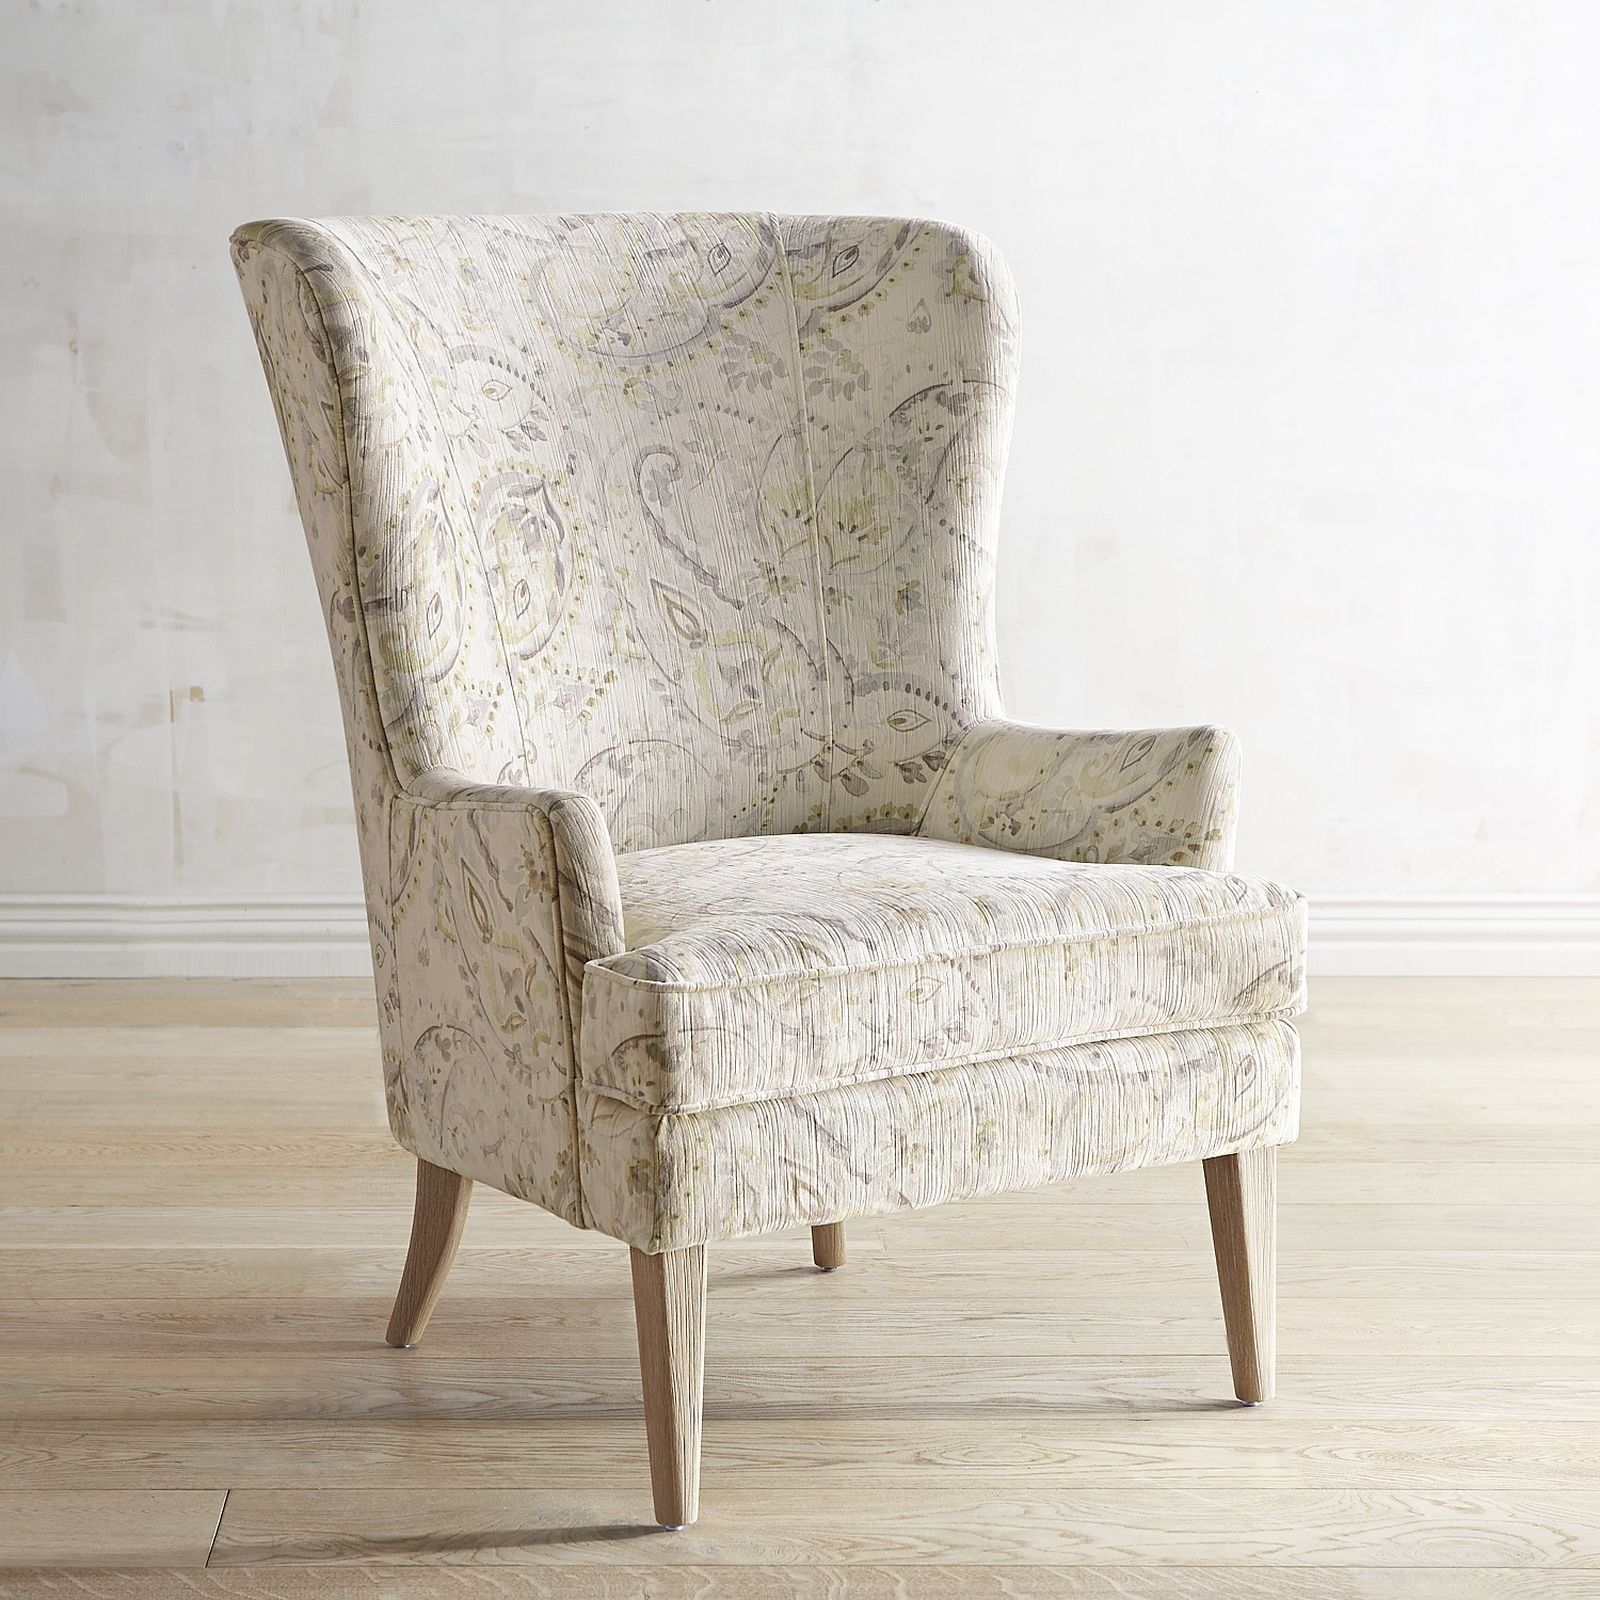 Asher wingback chair from Pier 1. Love the curved back